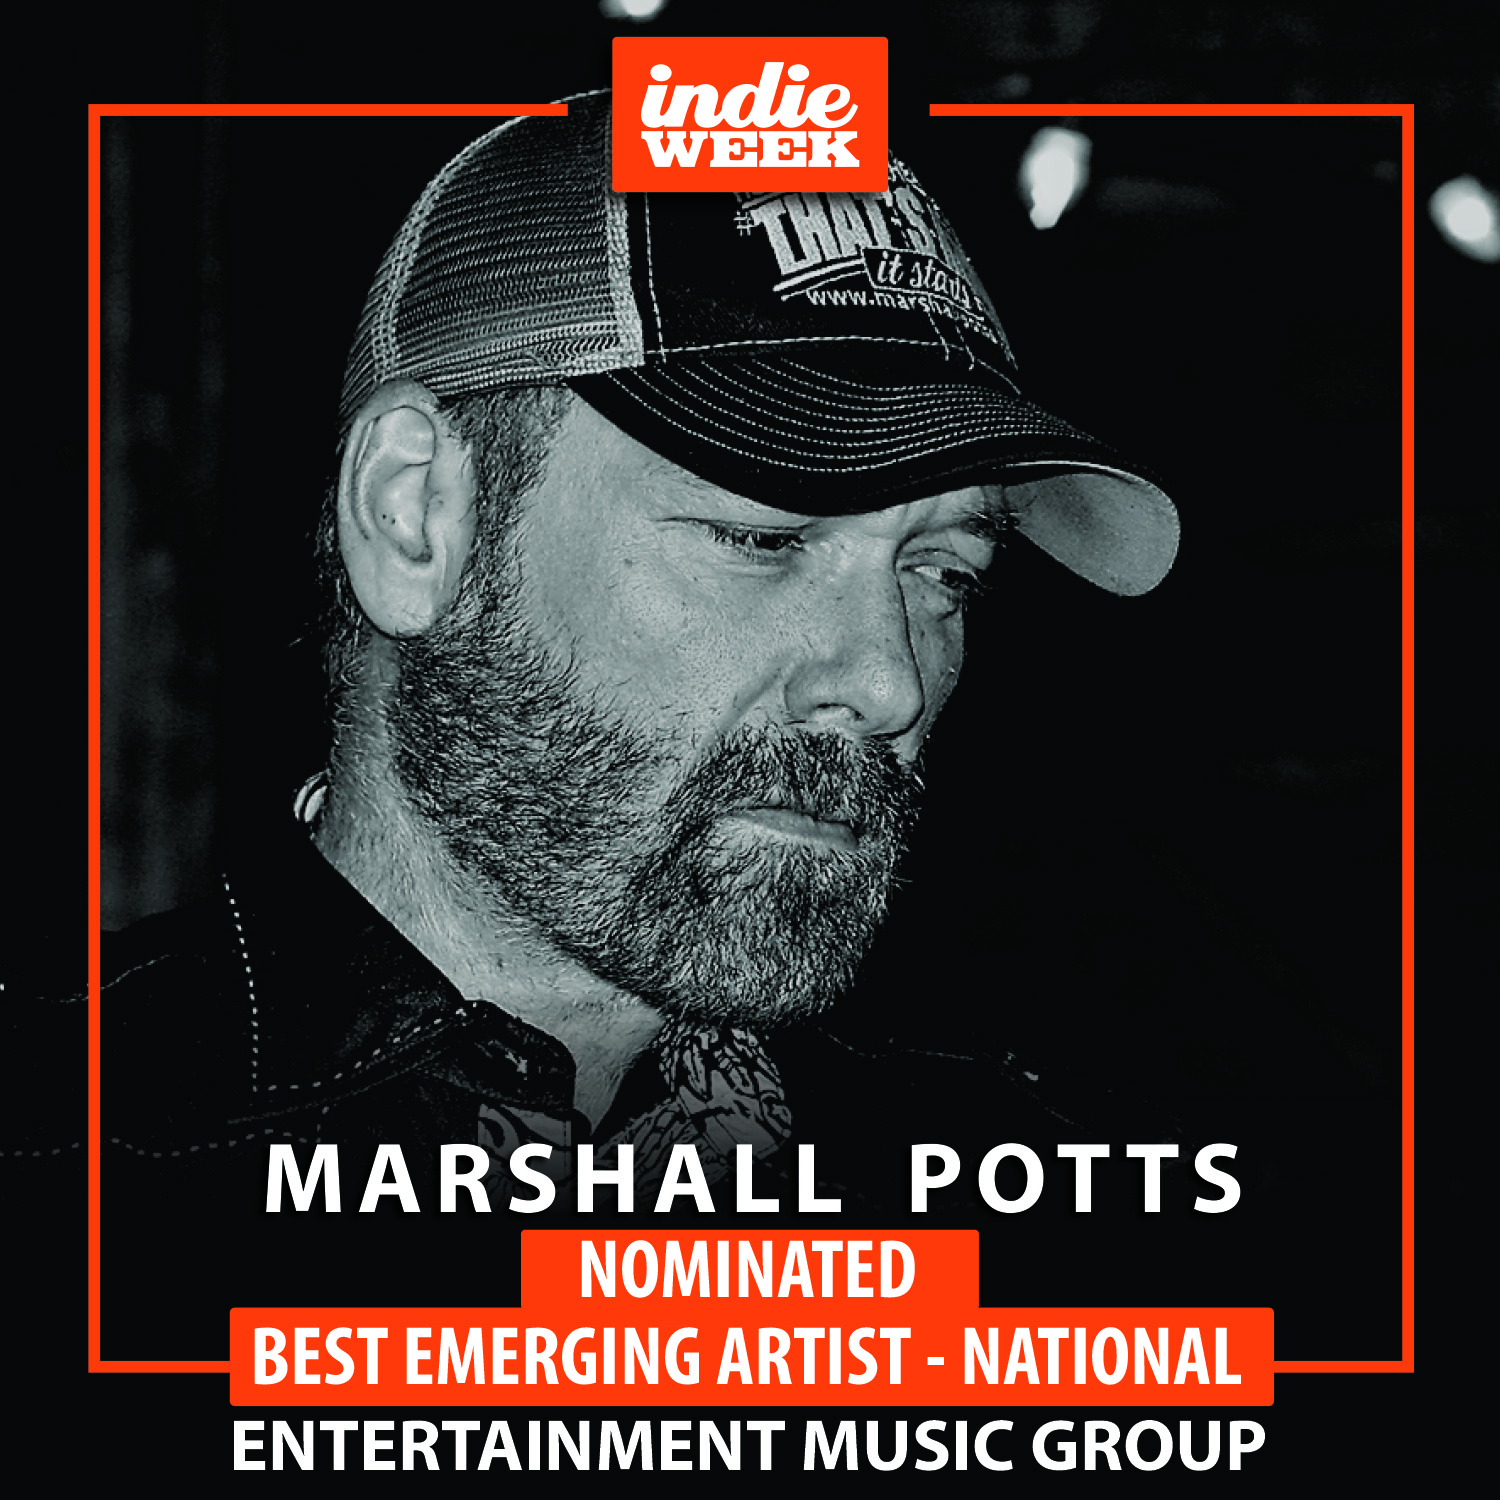 Nomination Marshall Potts